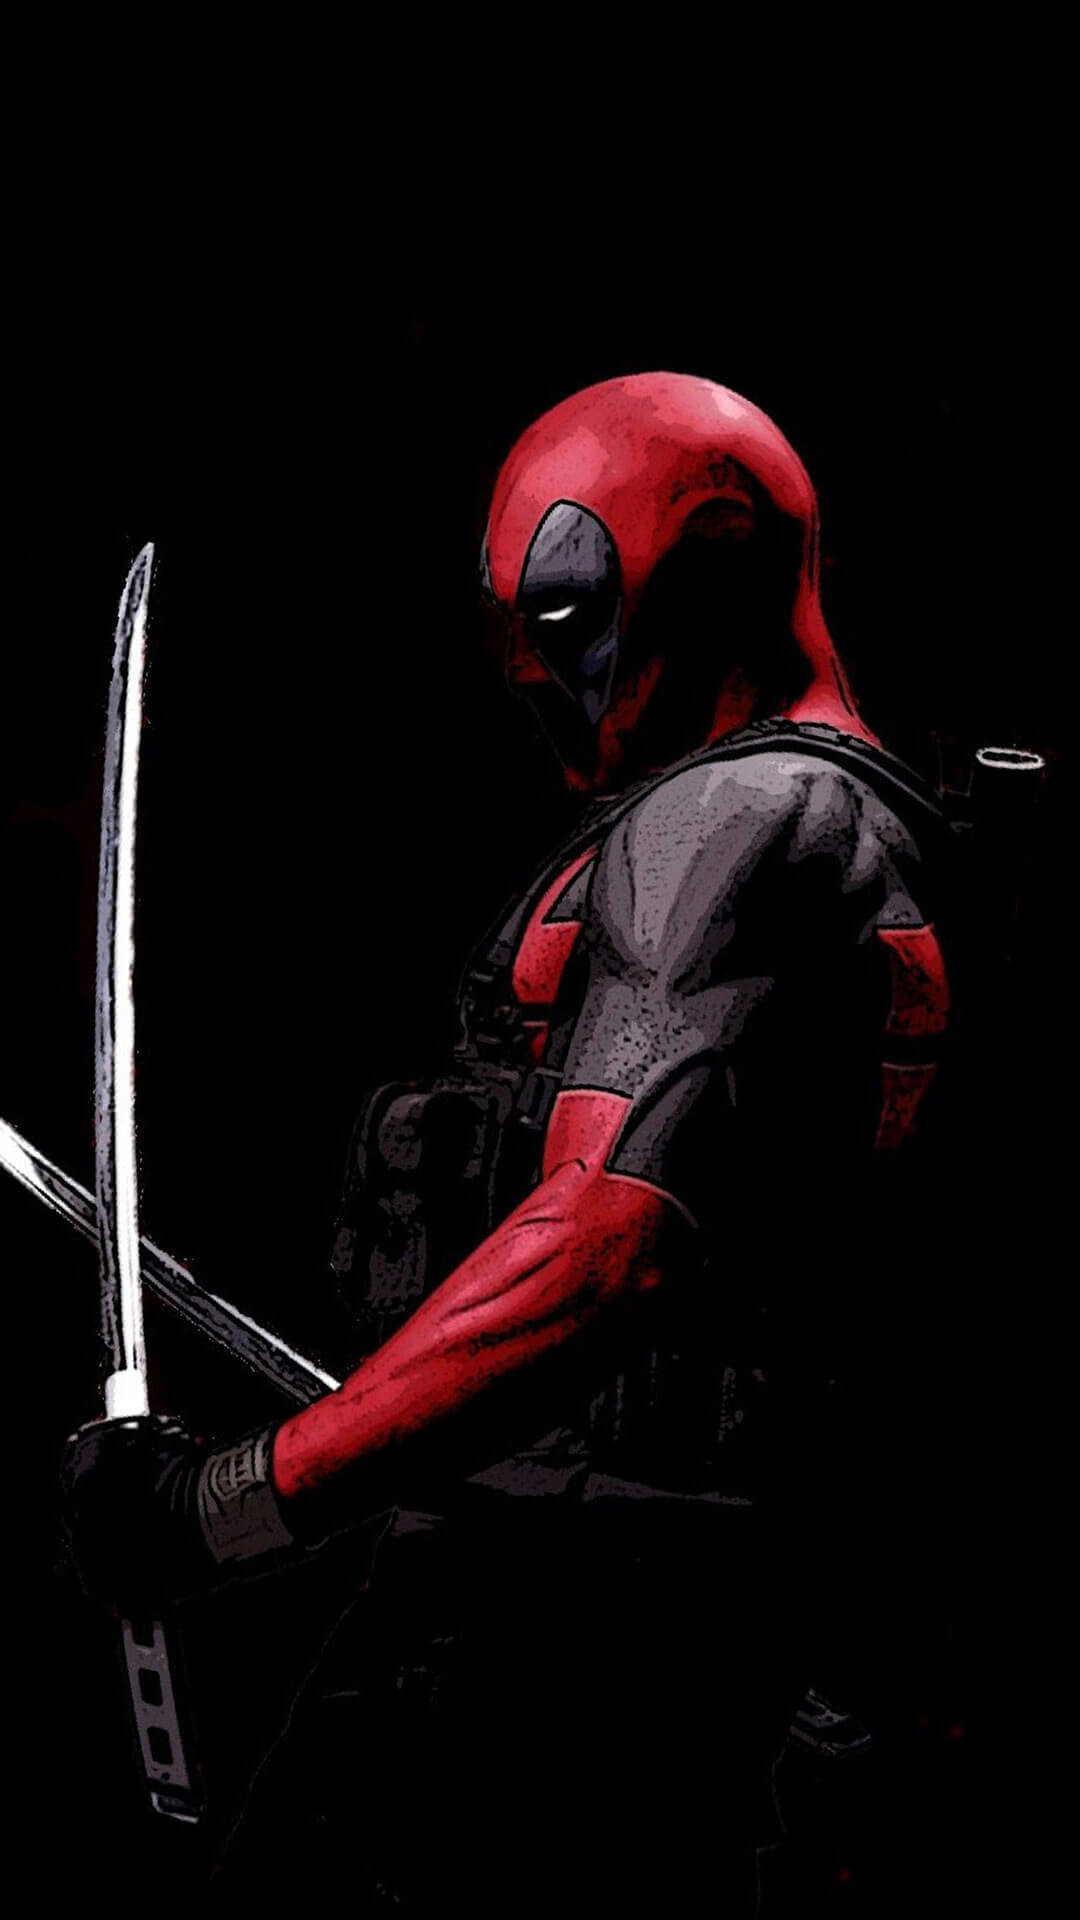 Deadpool wallpaper hd 72 images for Deadpool wallpaper 1920x1080